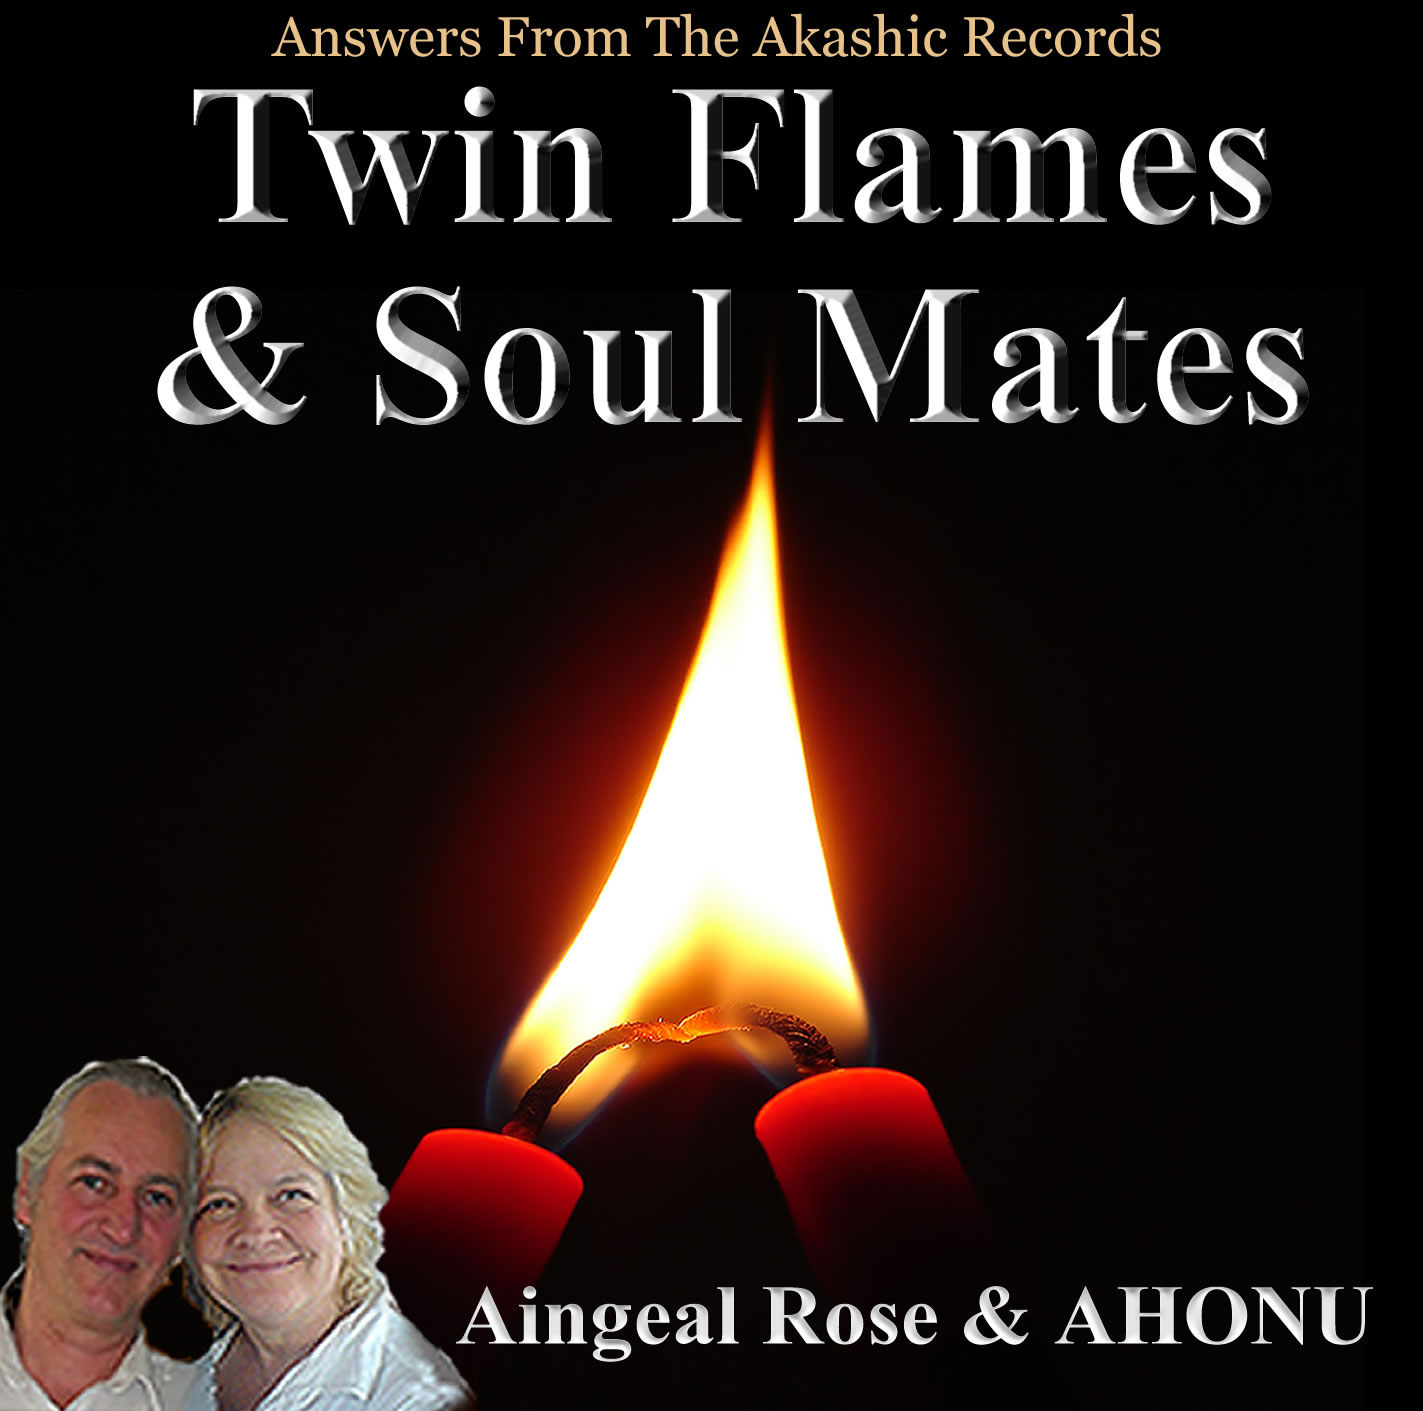 Can you tell the difference between a TWIN FLAME and a SOUL MATE?